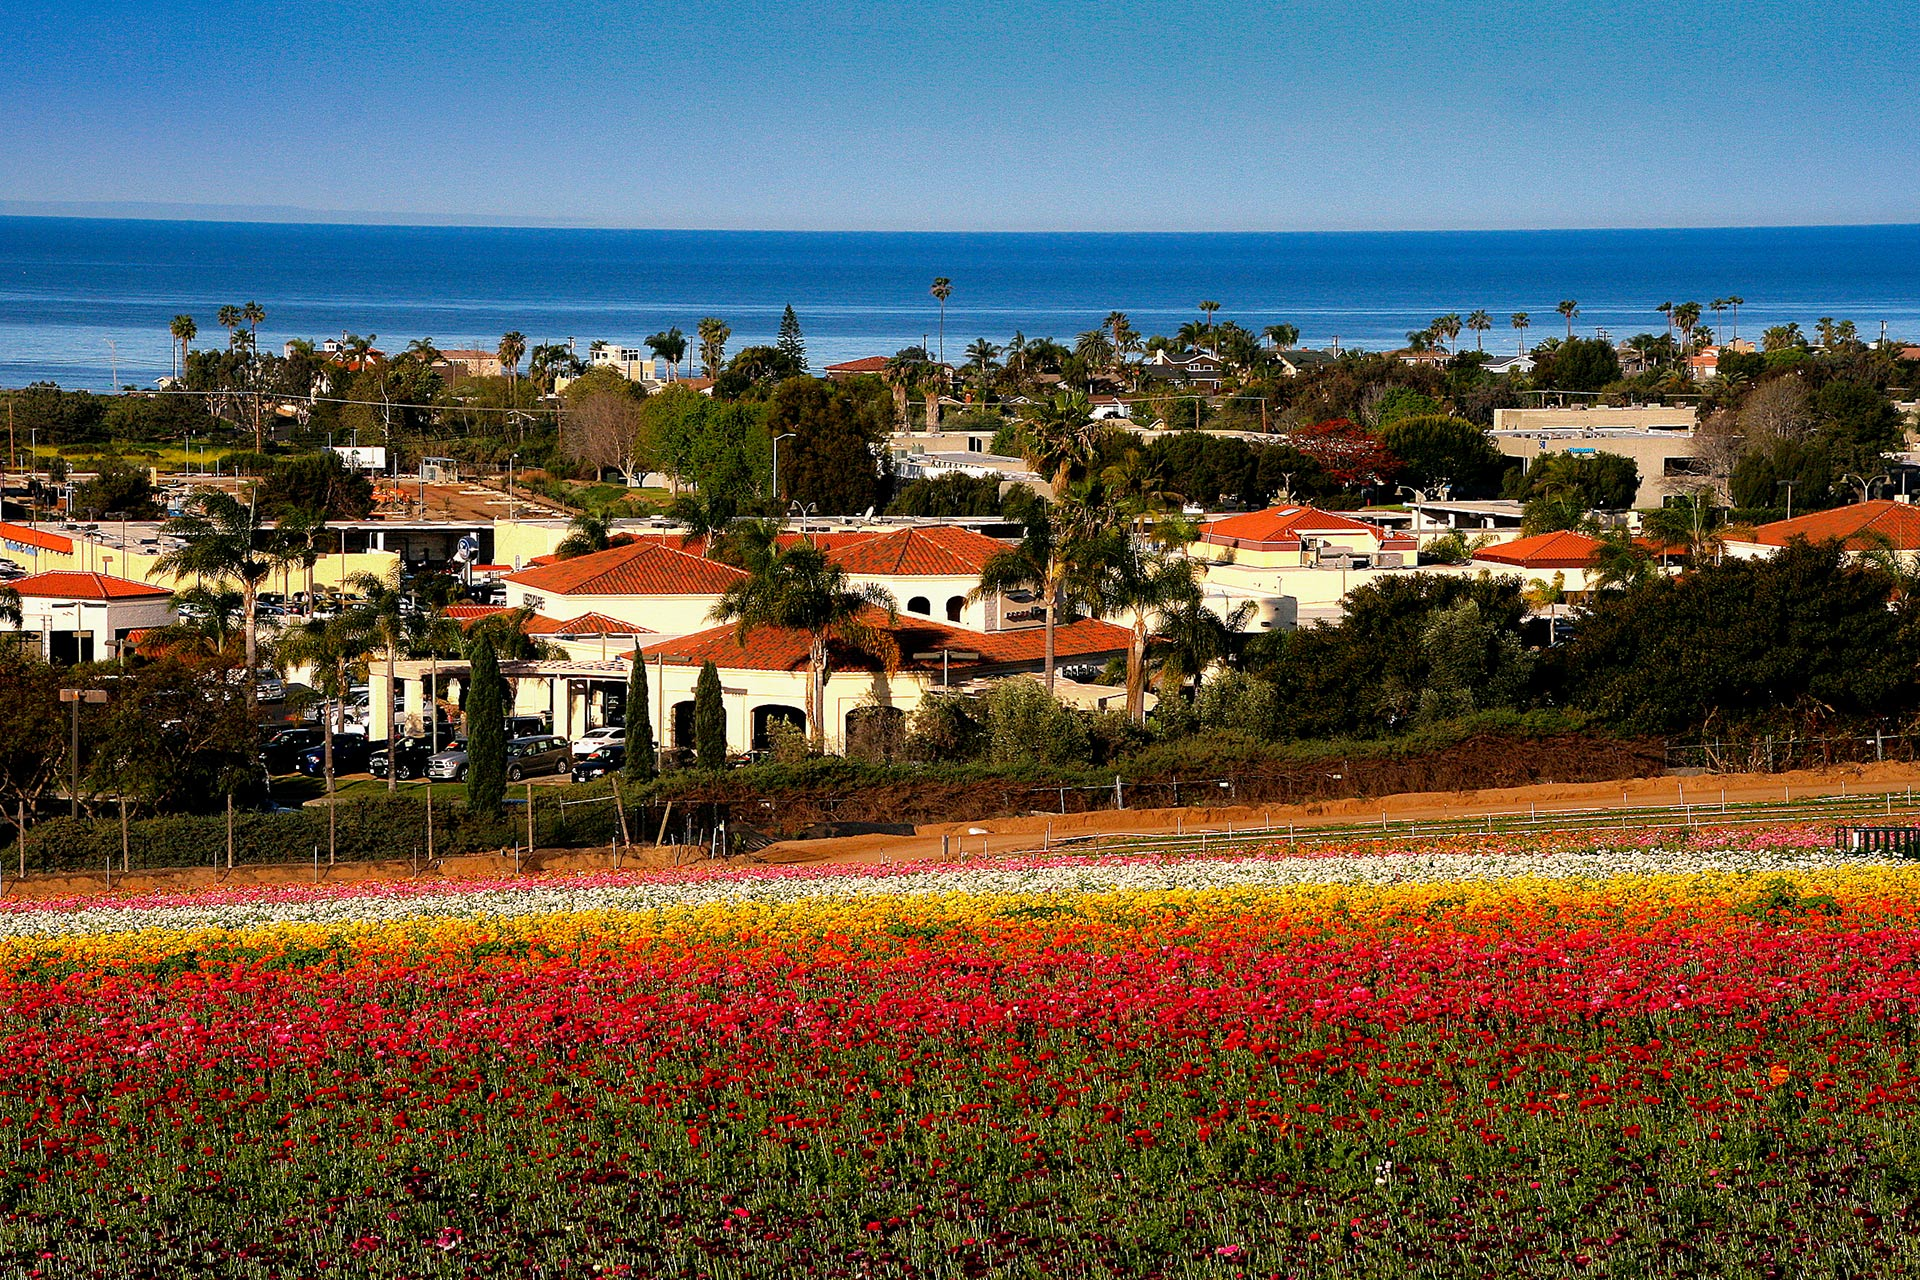 Flower fields in Carlsbad, California